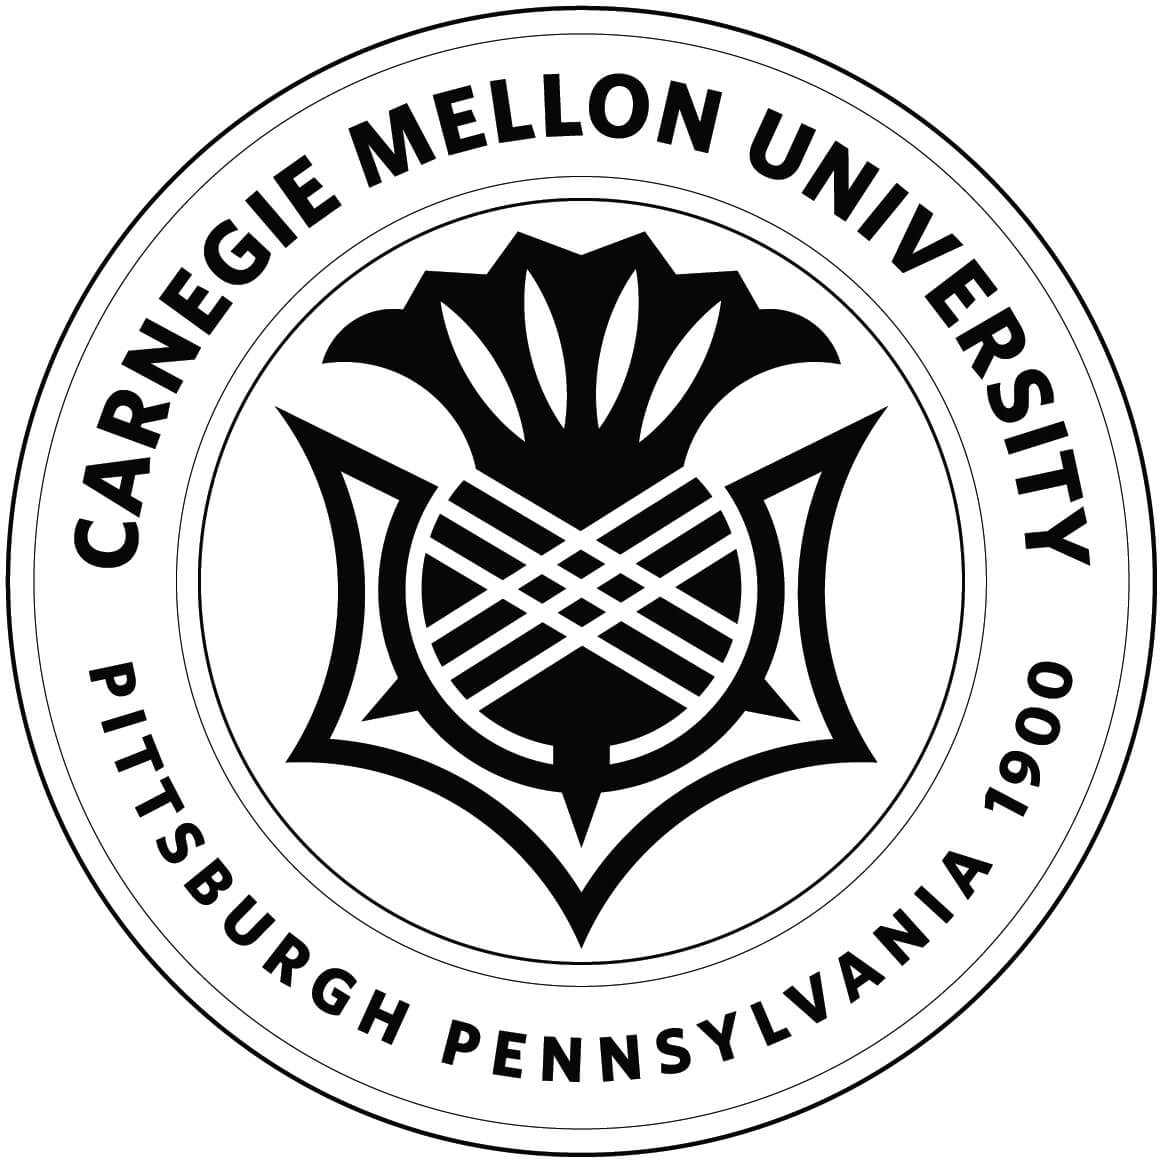 CMU Logo and Seal [Carnegie Mellon University] Download Vector.